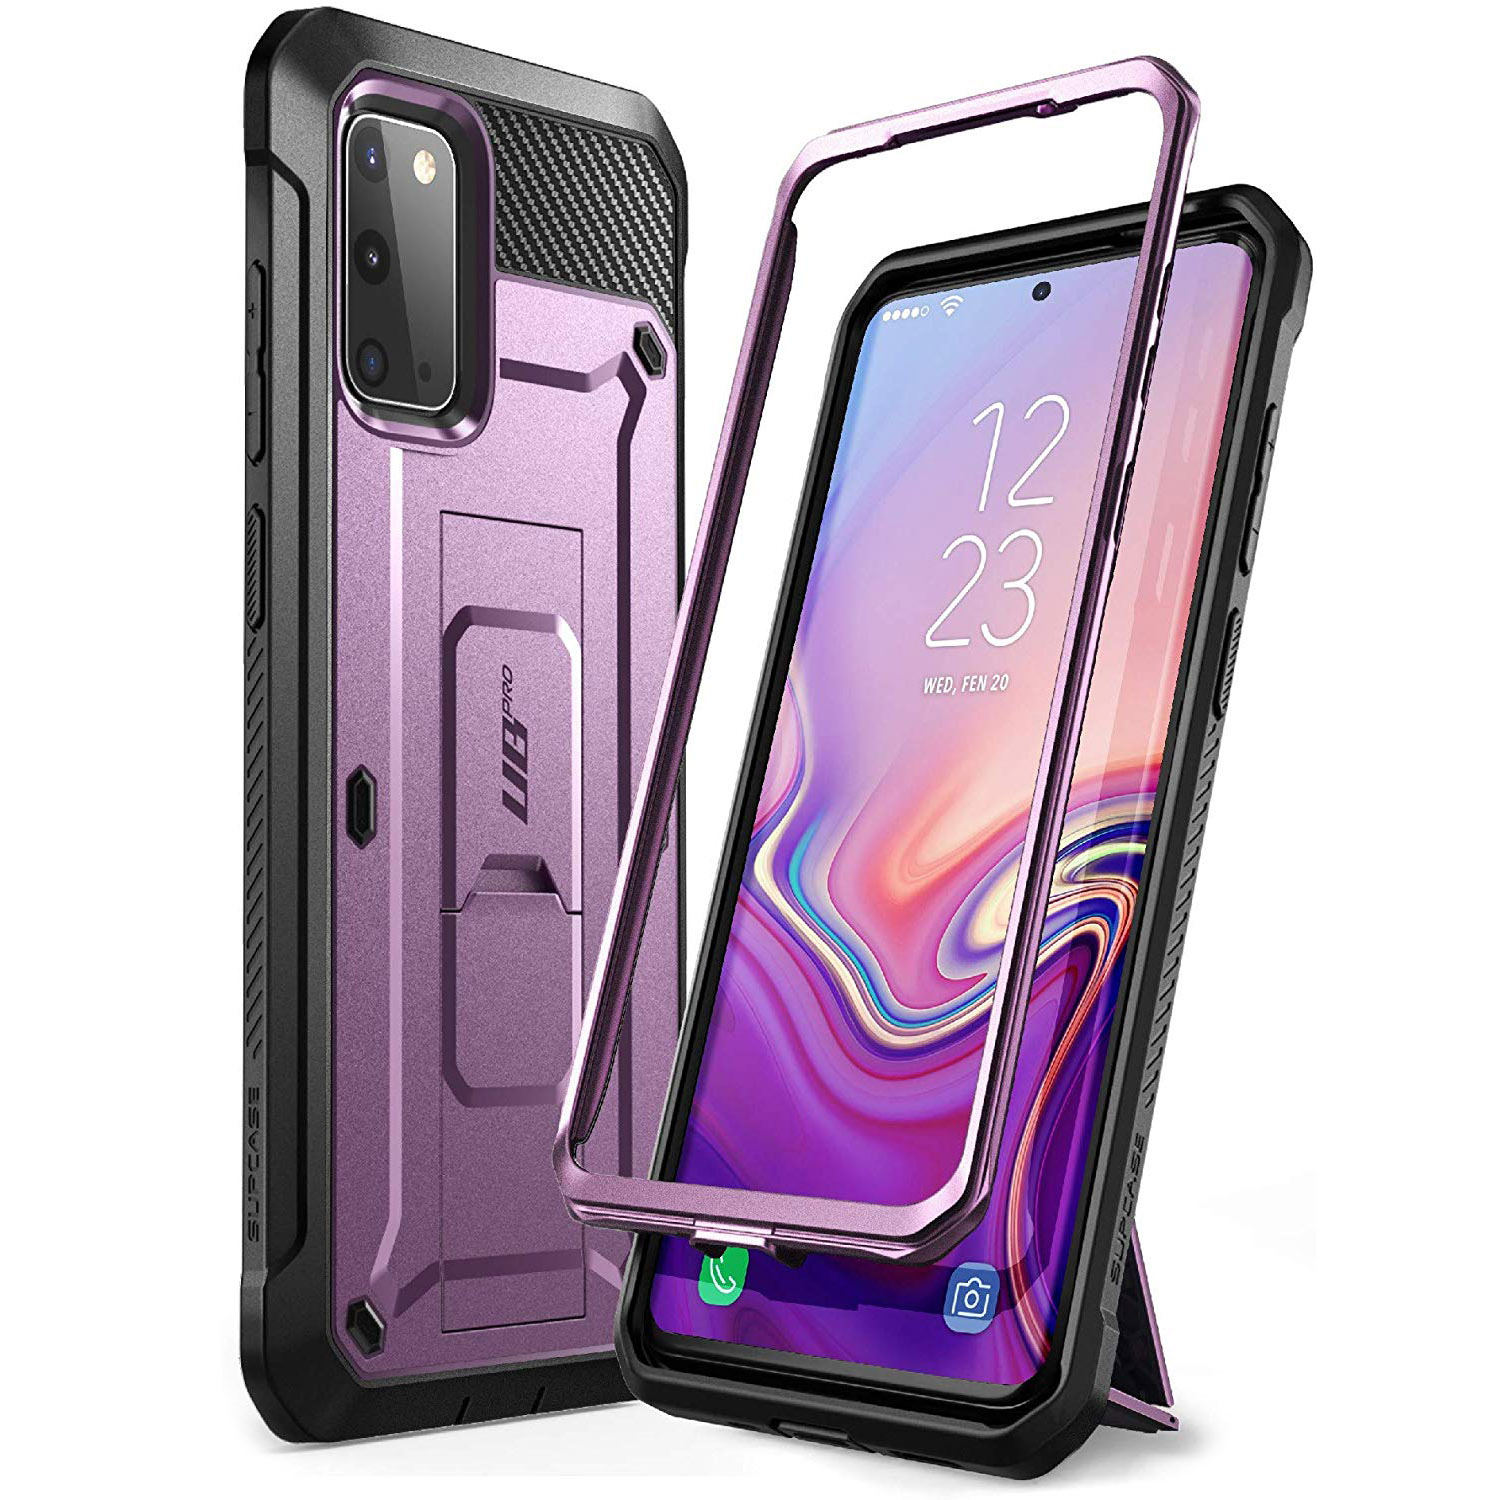 Etui pancerne Supcase Unicorn Beetle Pro do Galaxy S20